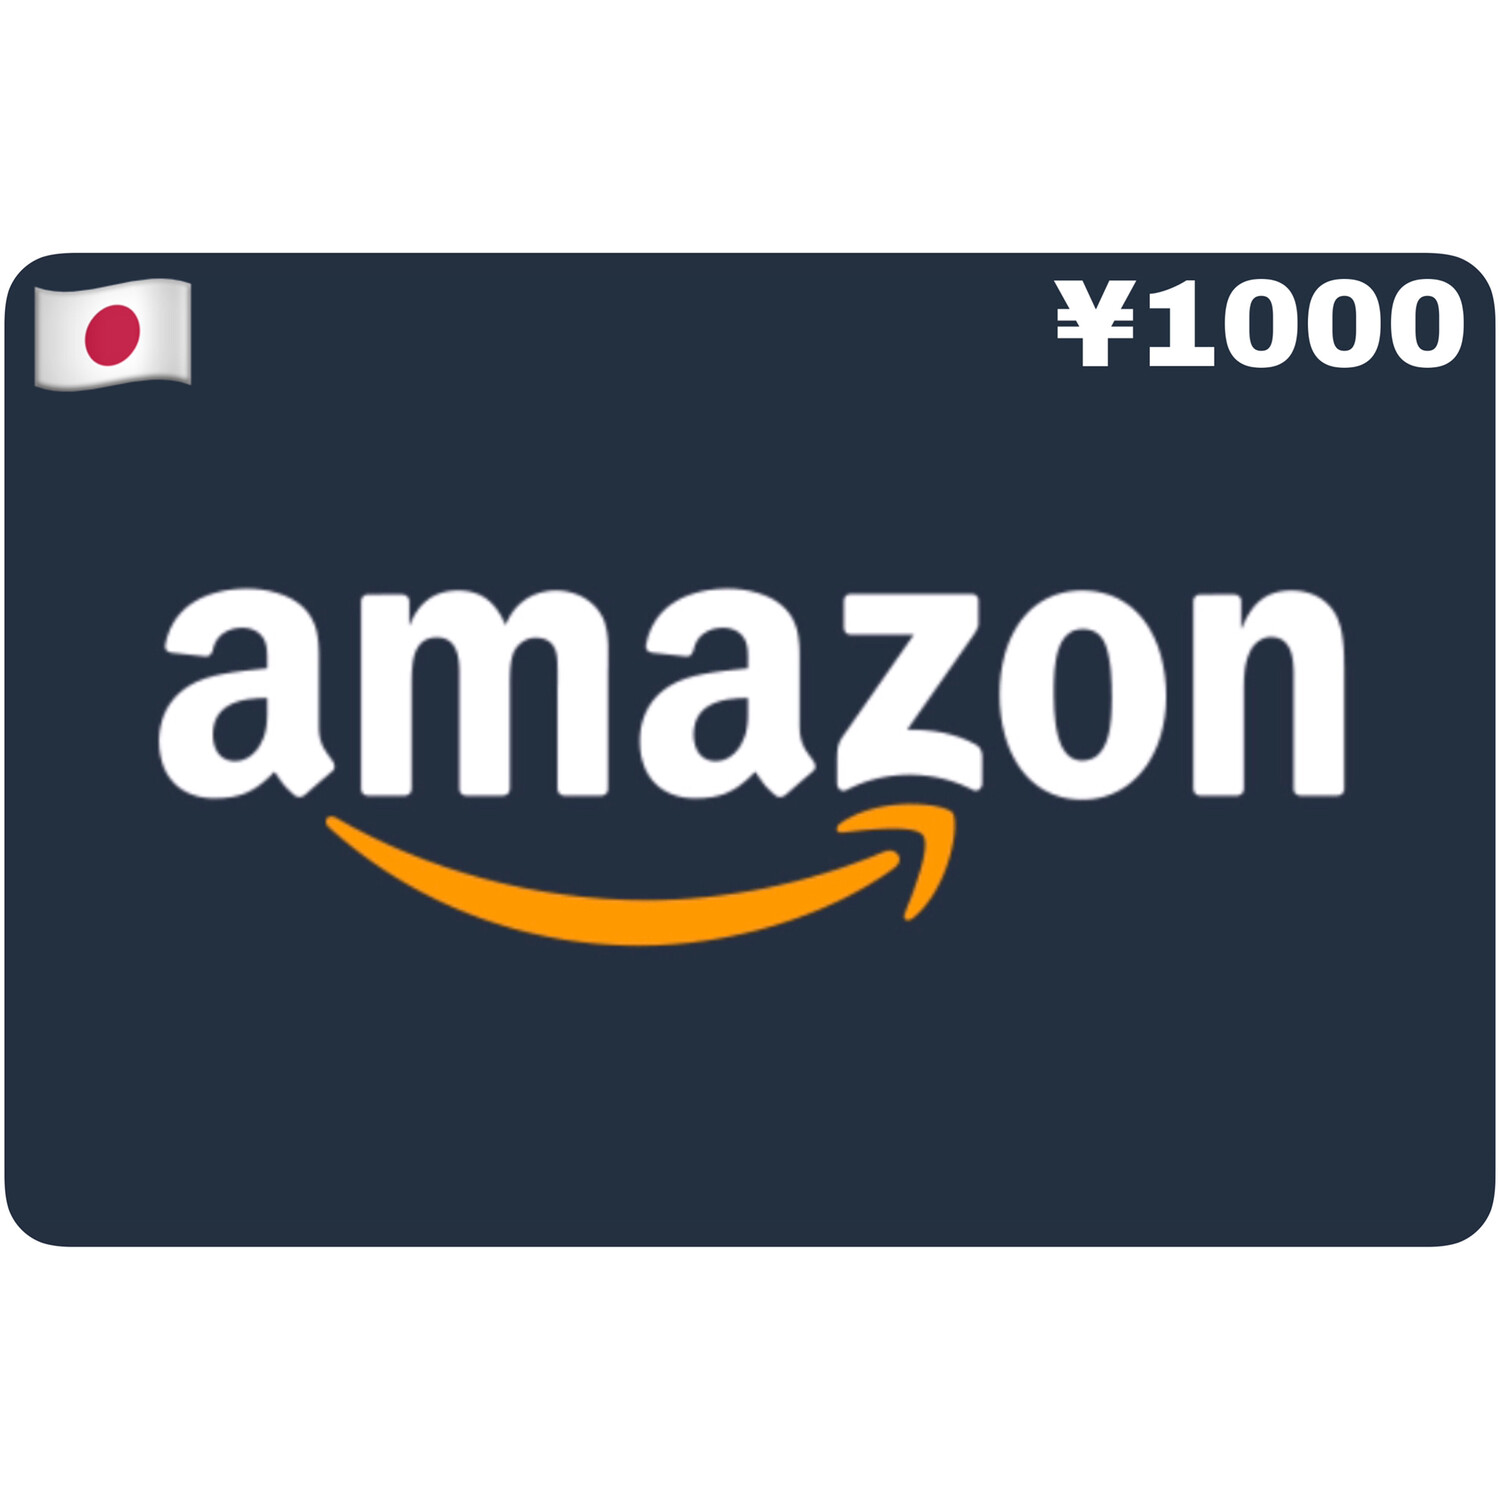 Amazon.co.jp Gift Card Japan ¥1000 Yen